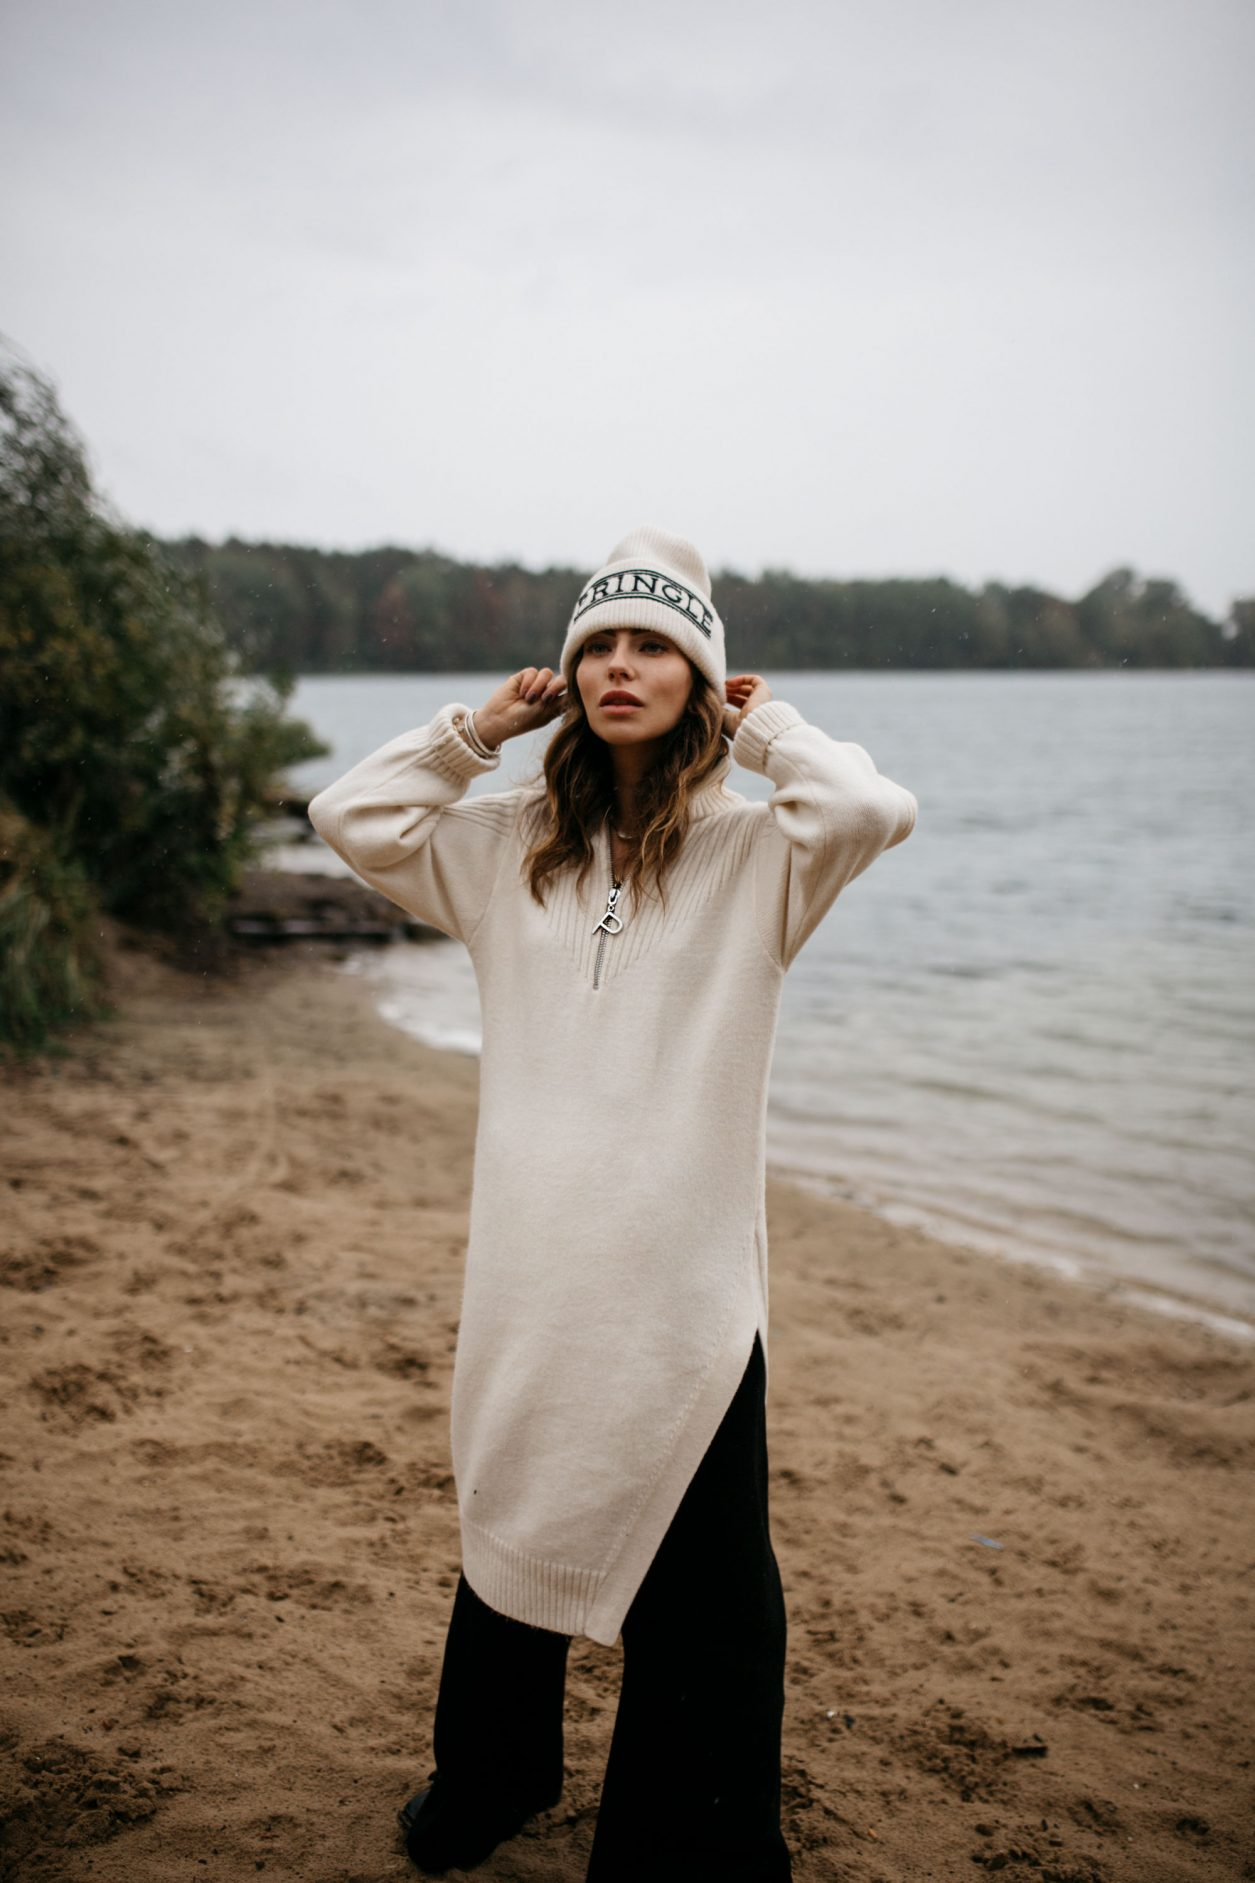 H&M x Pringle of Scotland | Design Kollektion | 2019 | Herbst Winter | Editorial Shooting by Berlin based Fashion Blogger Masha Sedgwick | Flughafen See Tegel | style: moody, comfy, clean